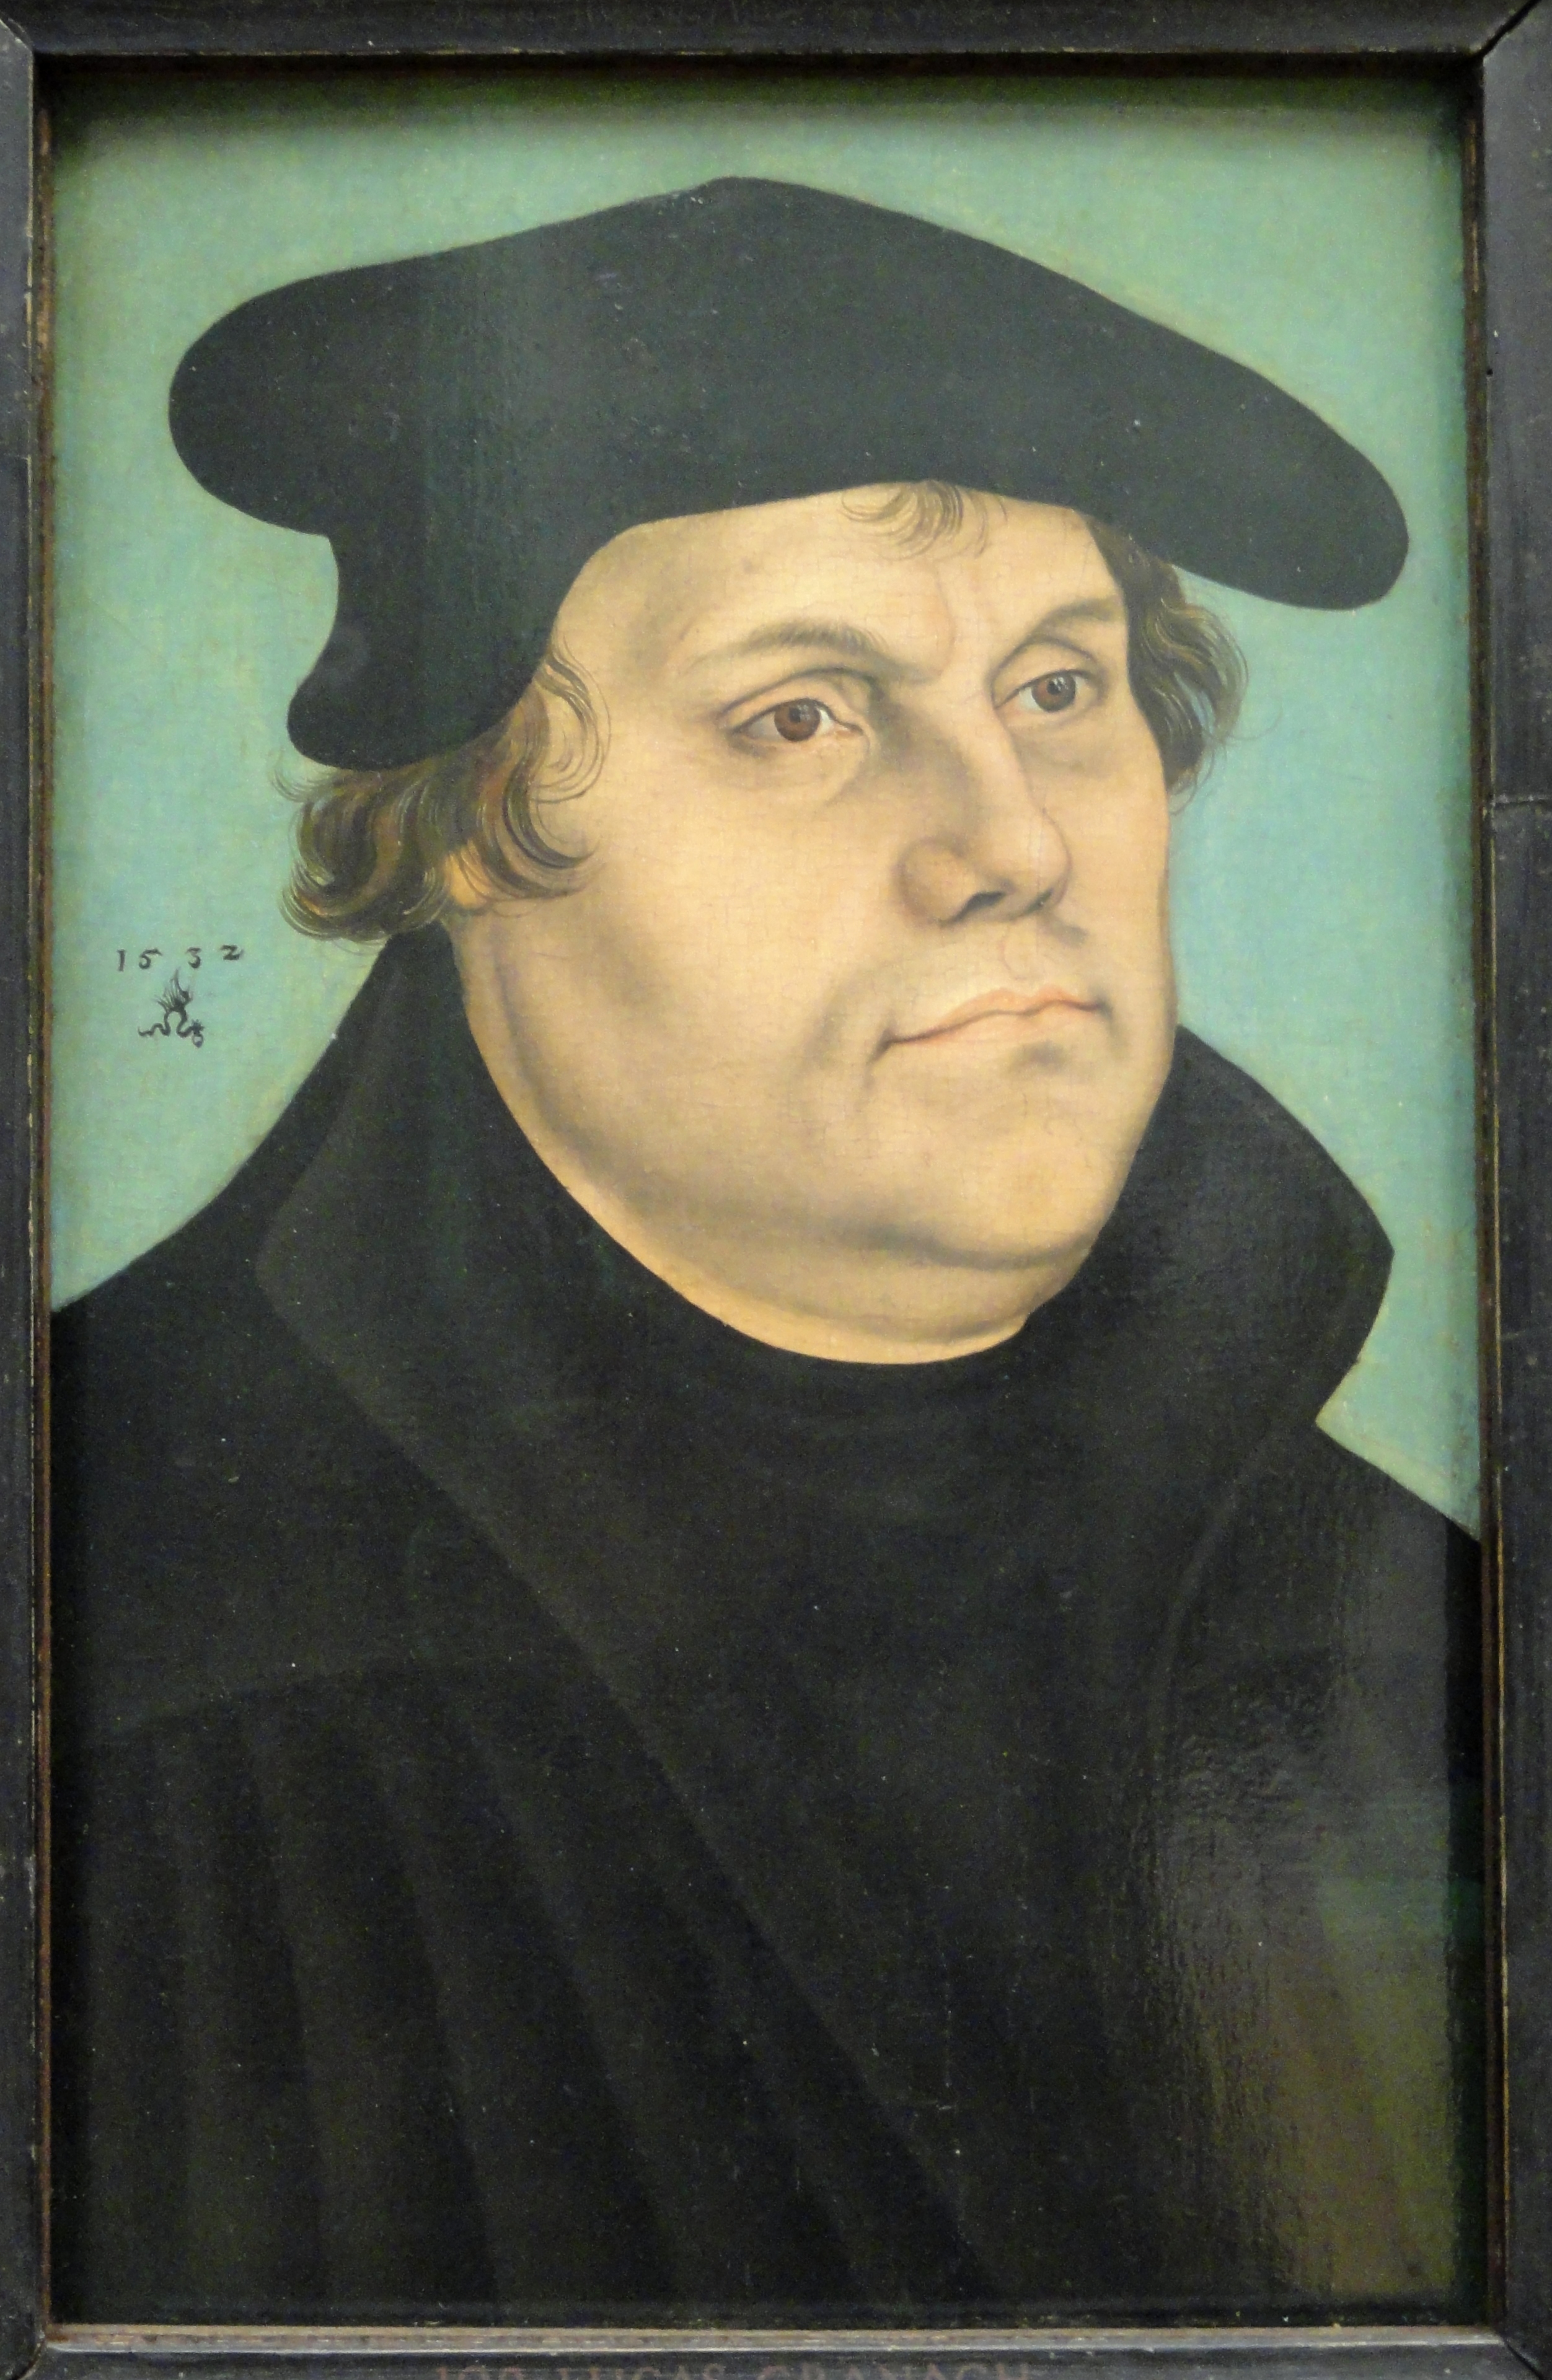 ninety five theses tagalog The ninety-five theses or disputation on the power of indulgences are a list of propositions for an academic disputation written in 1517 by martin luther, pr.